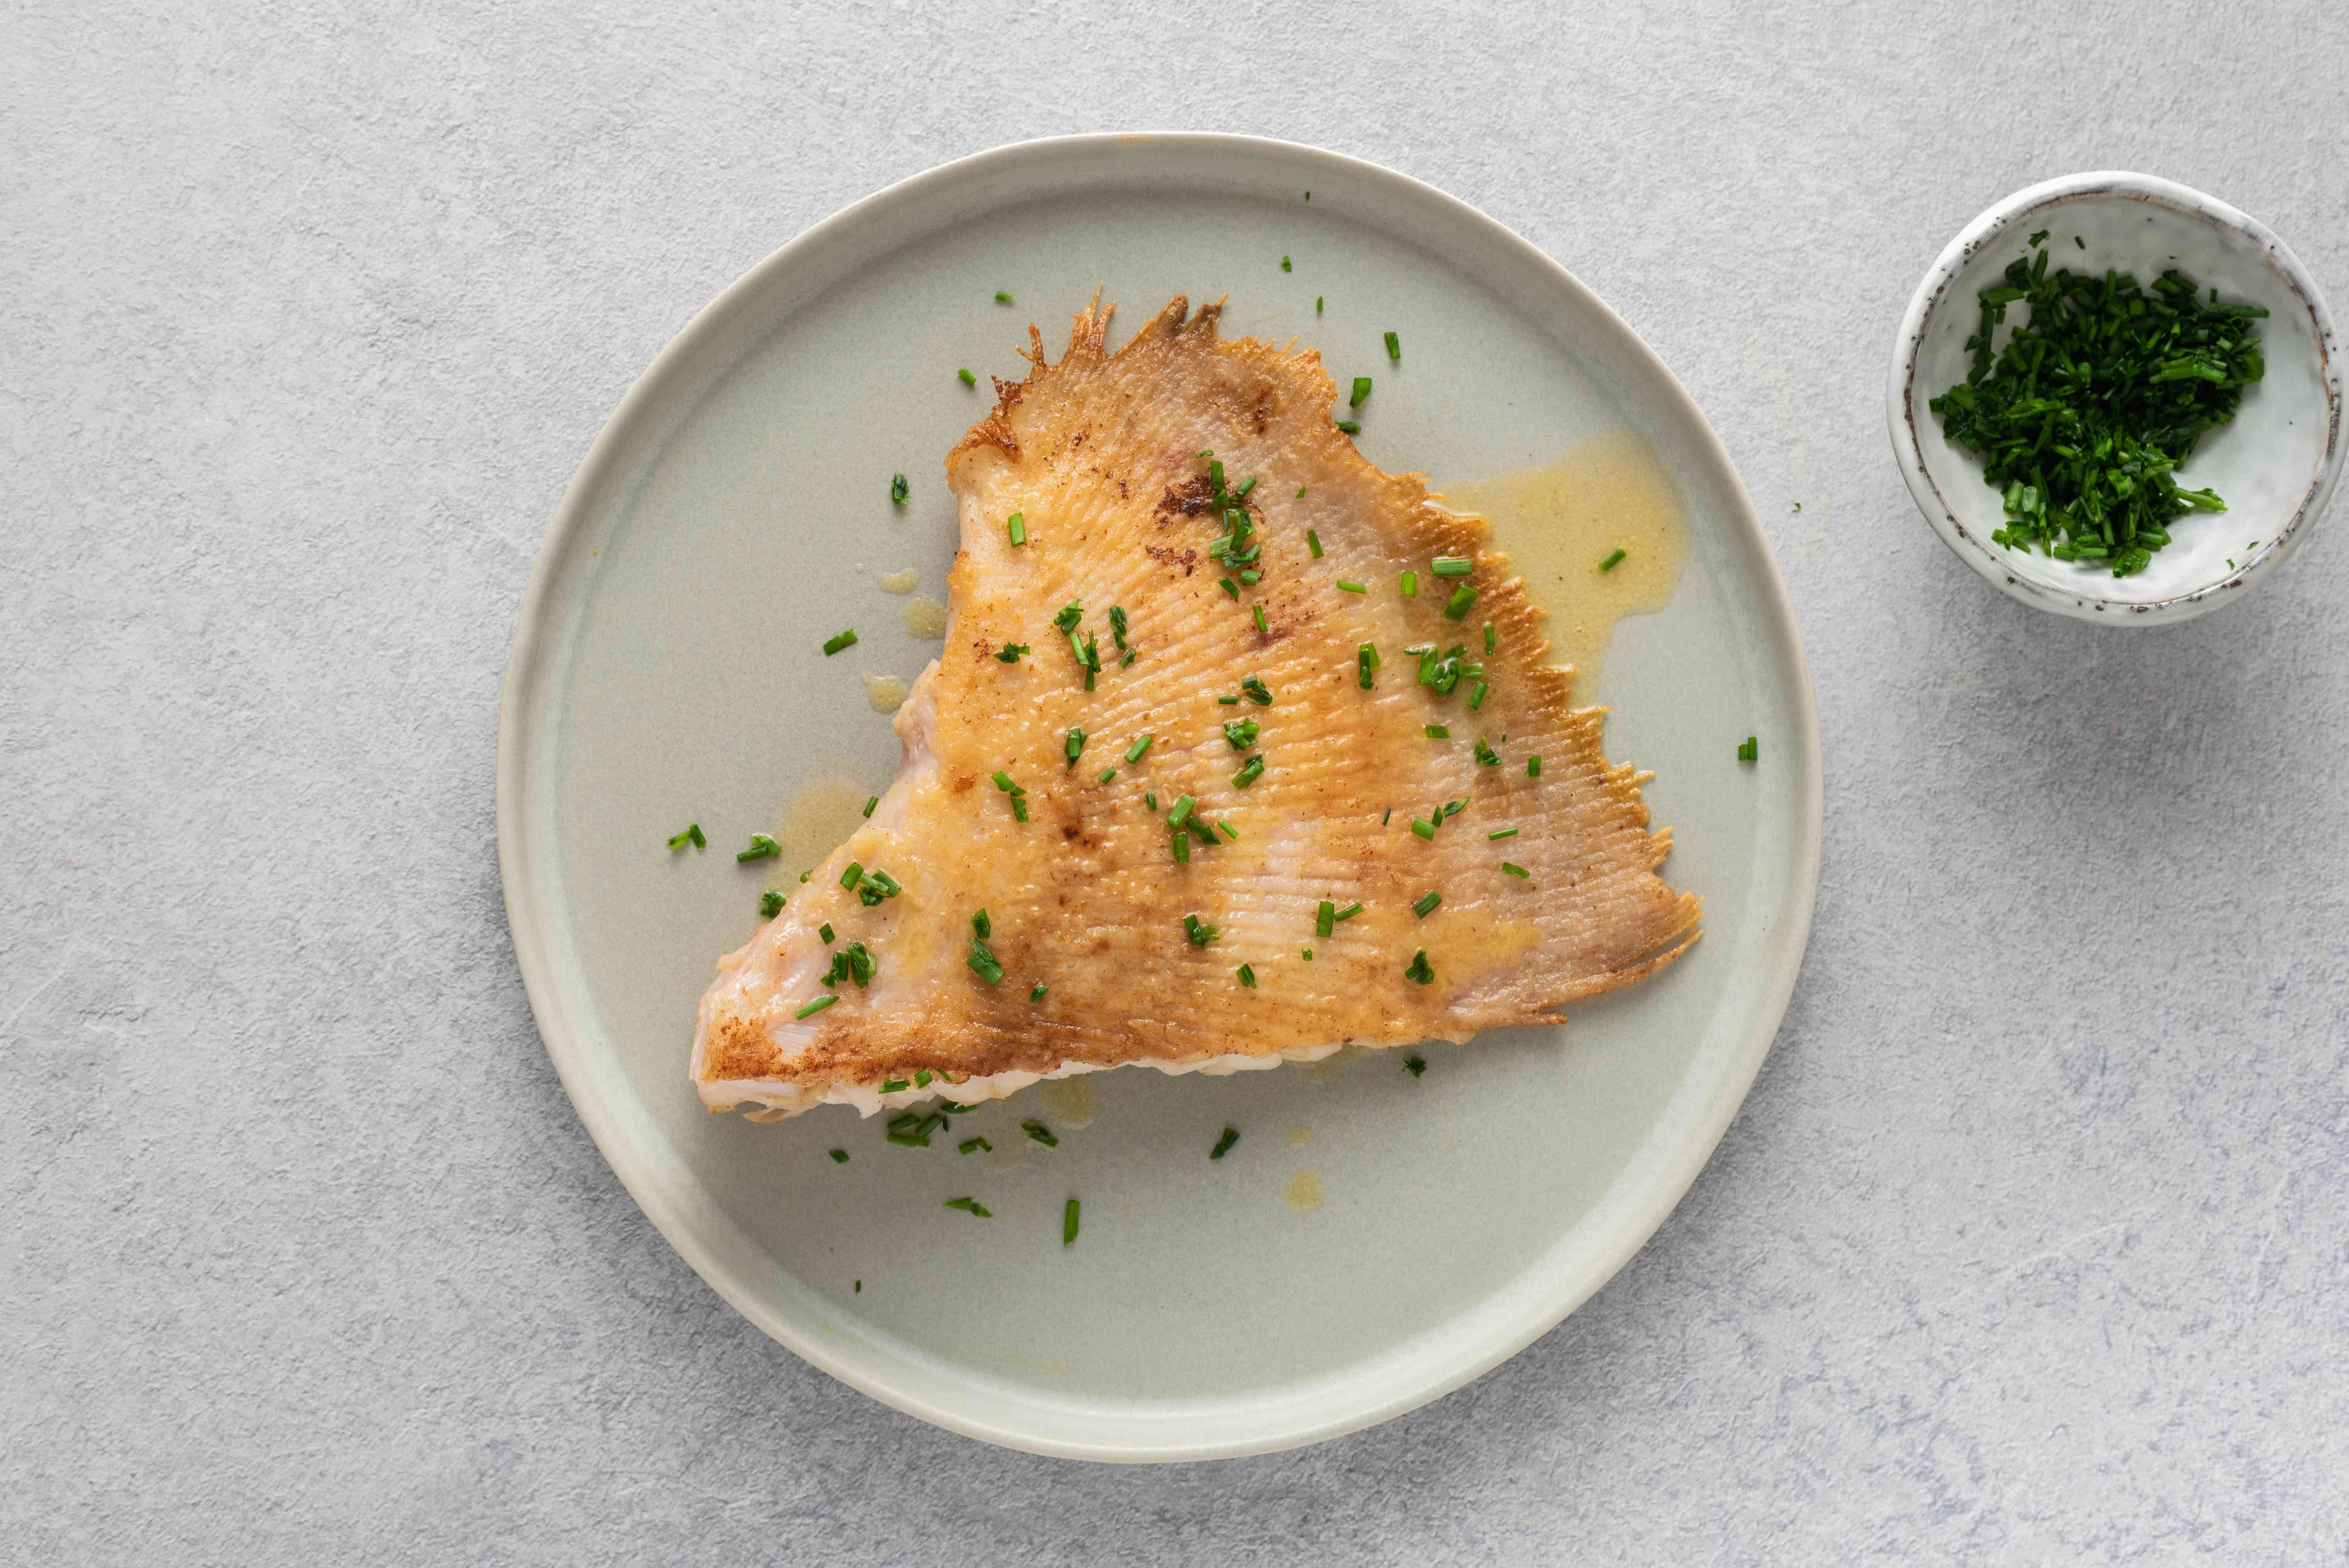 Skate wing with brown butter with chives